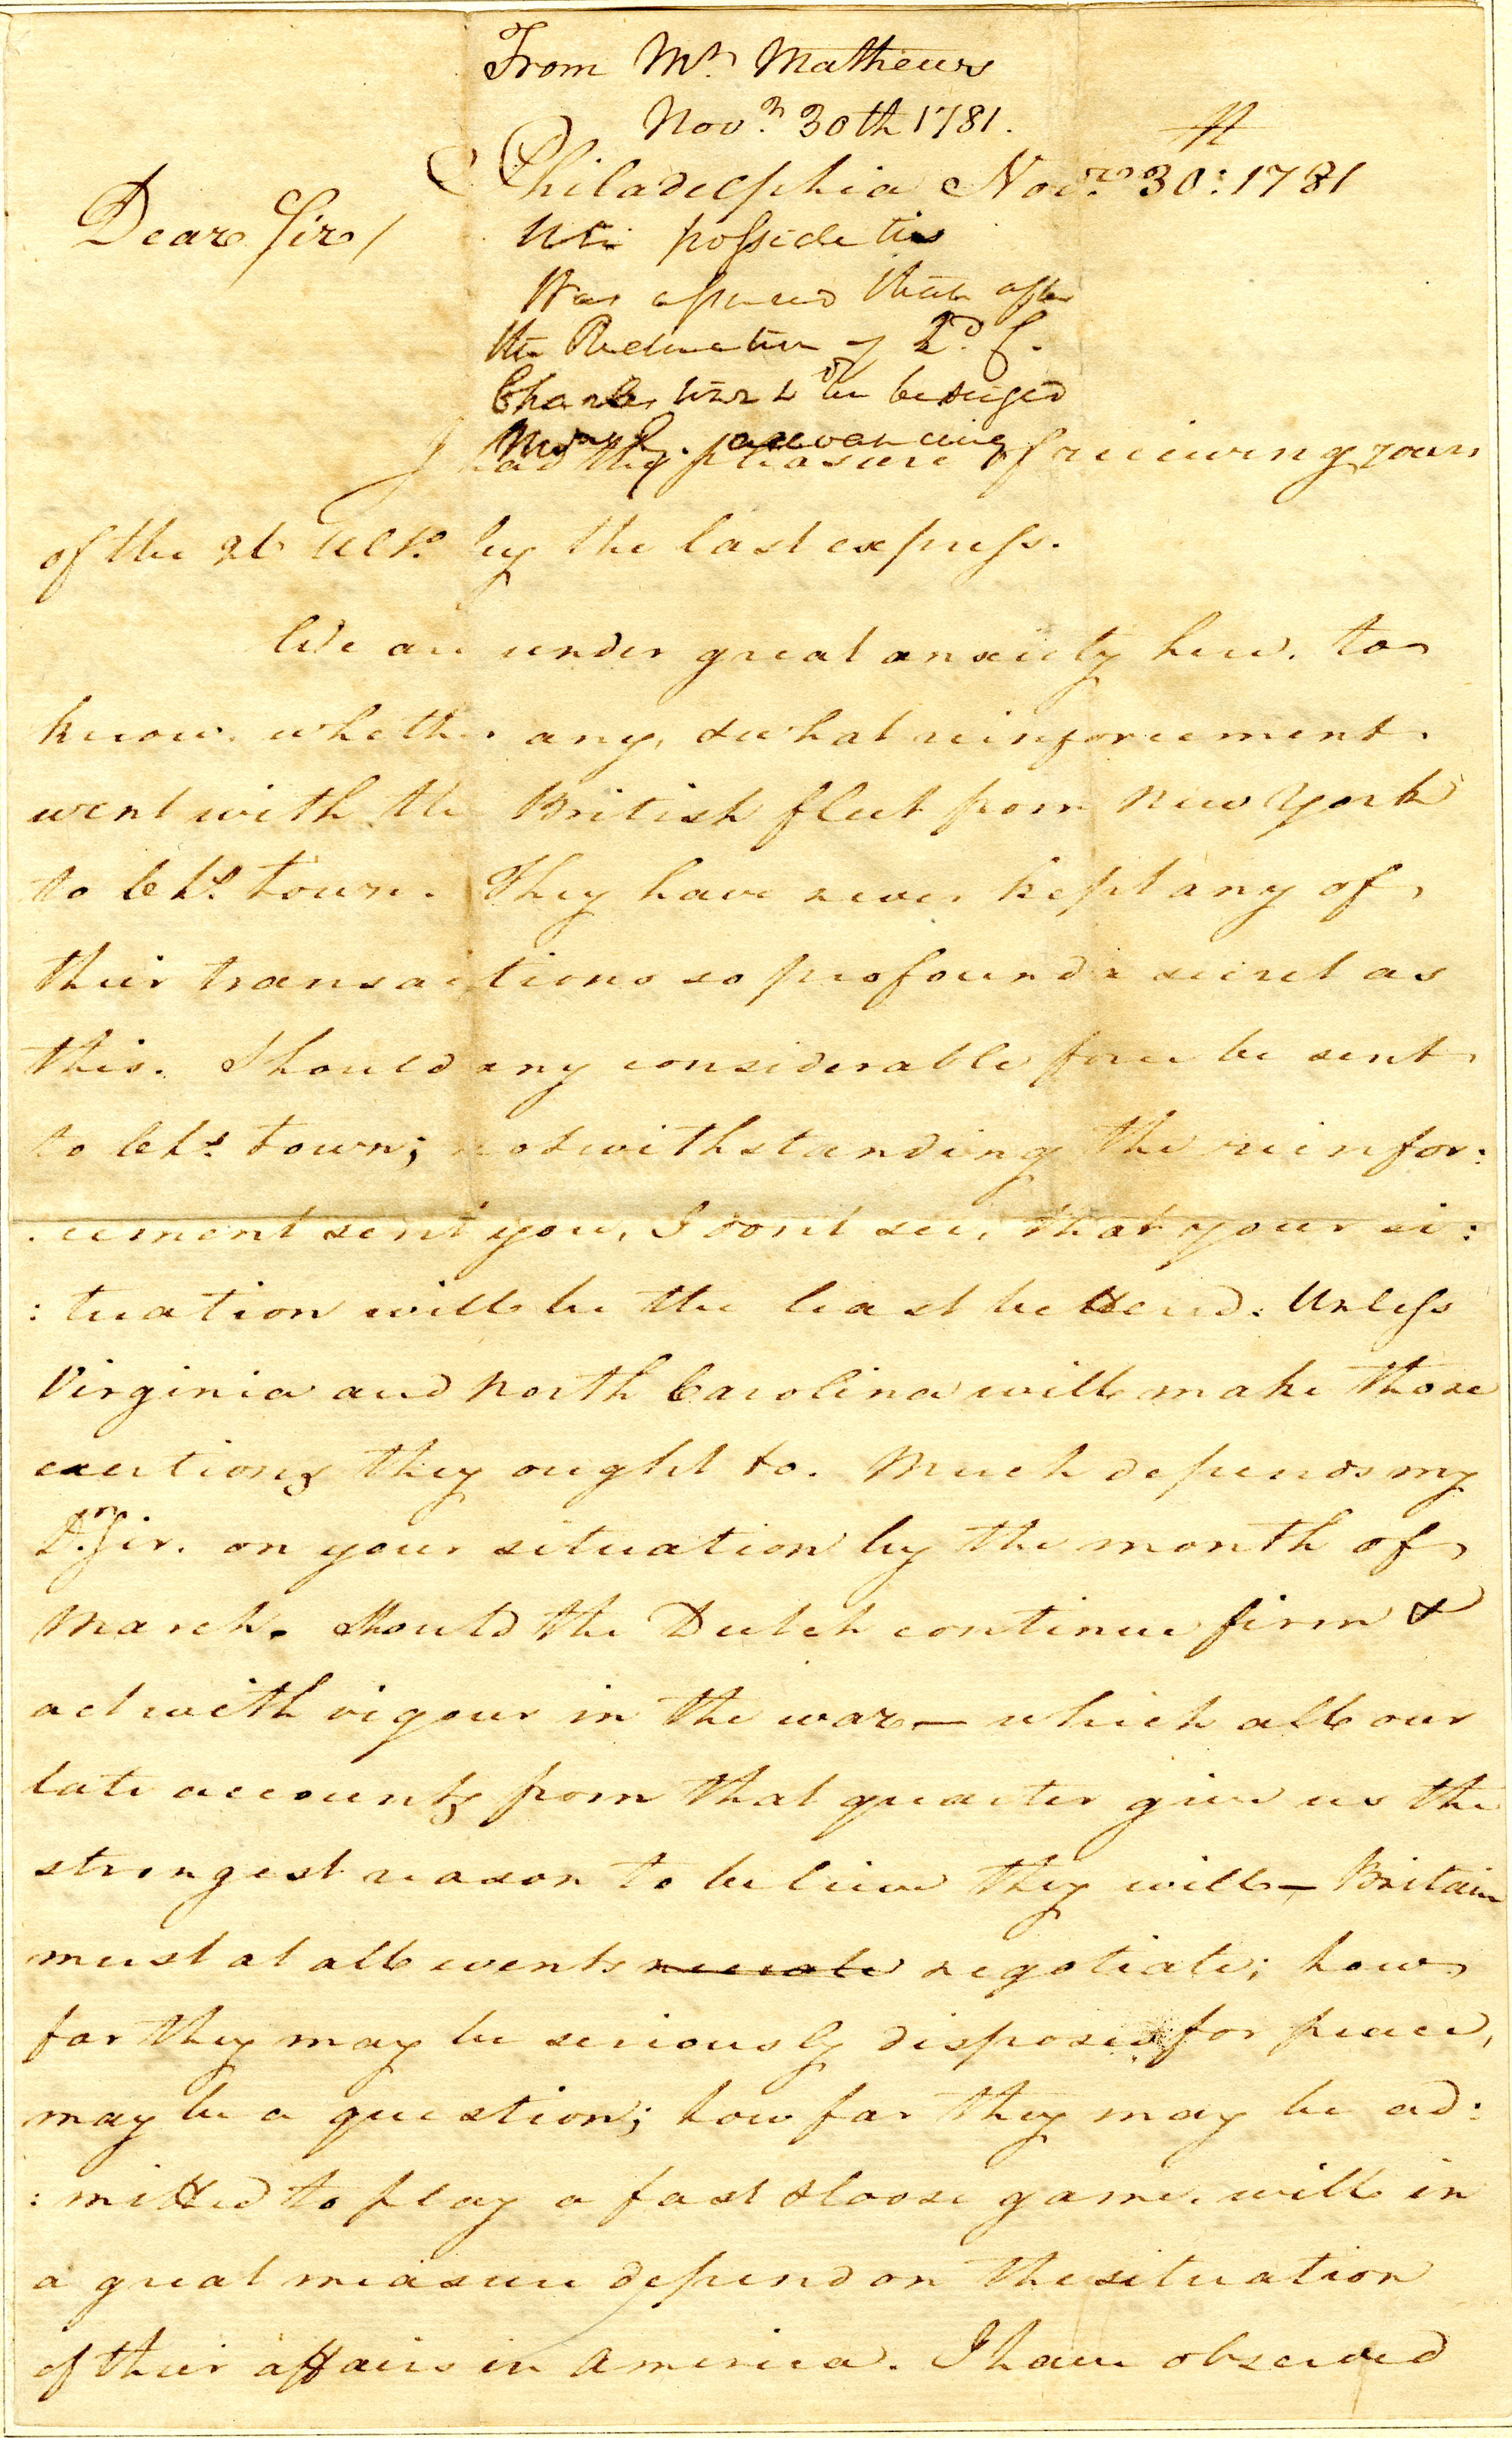 Letter from John Mathews to Nathanael Greene